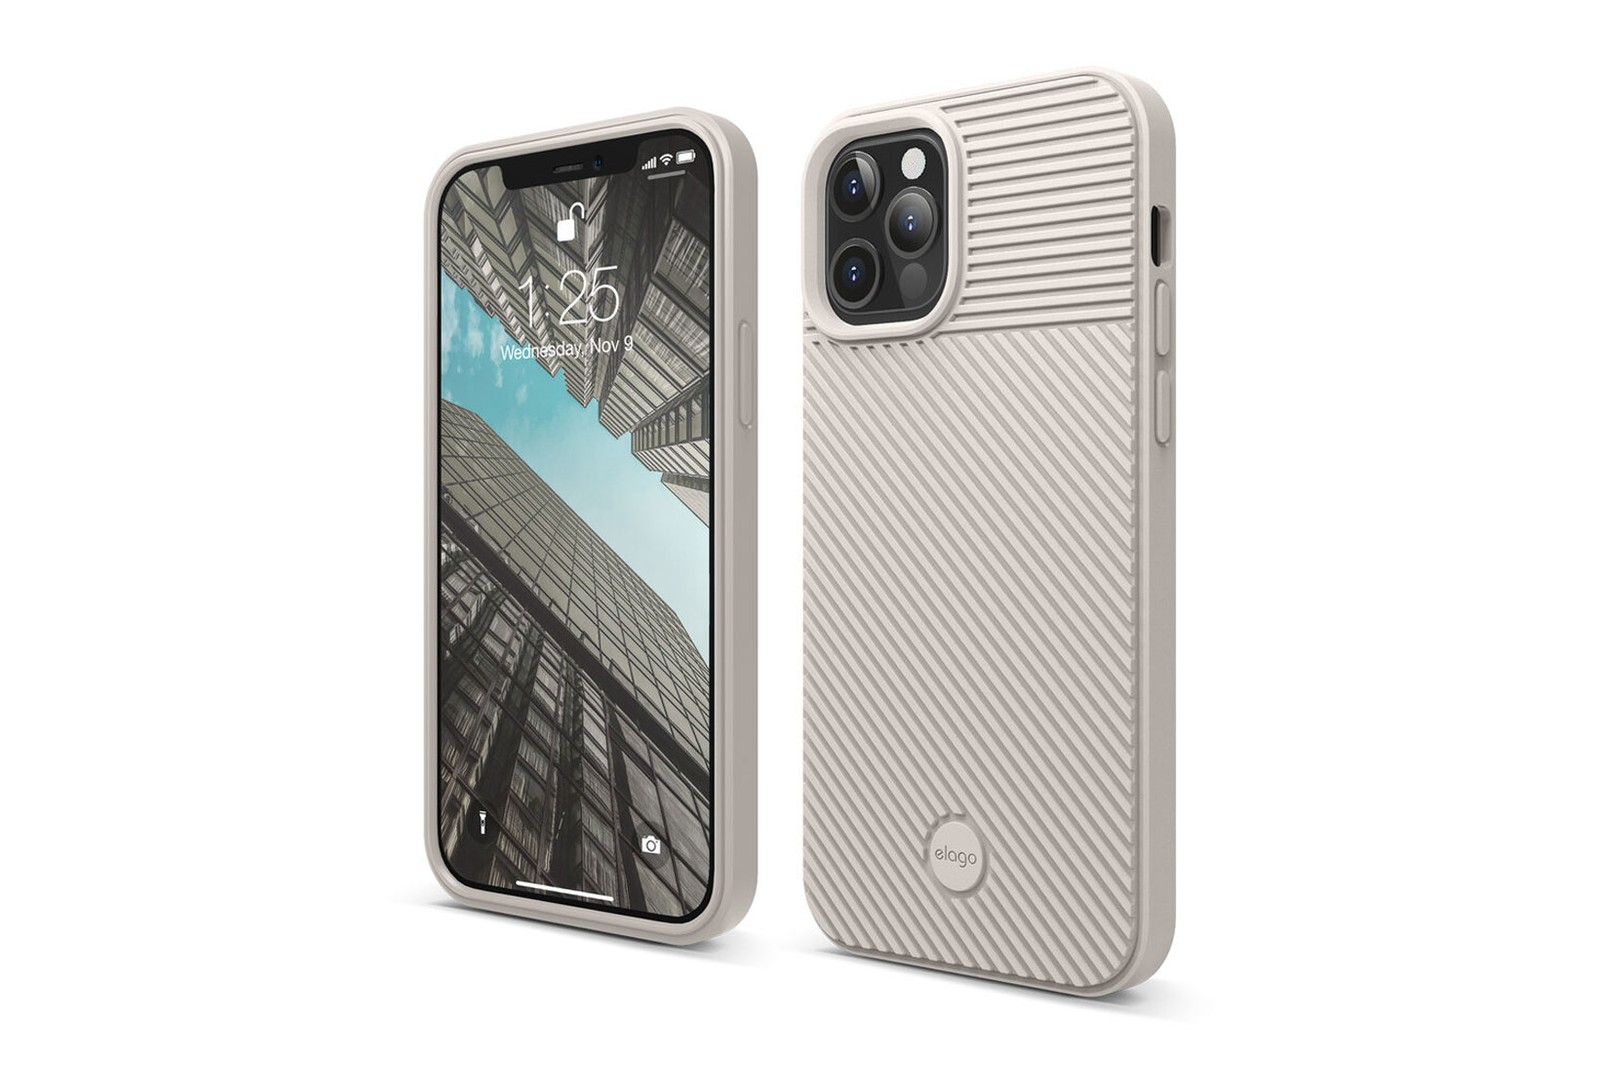 best apple iphone 12 pro max mini cases protection shockproof customizable eco-friendly casetify speck